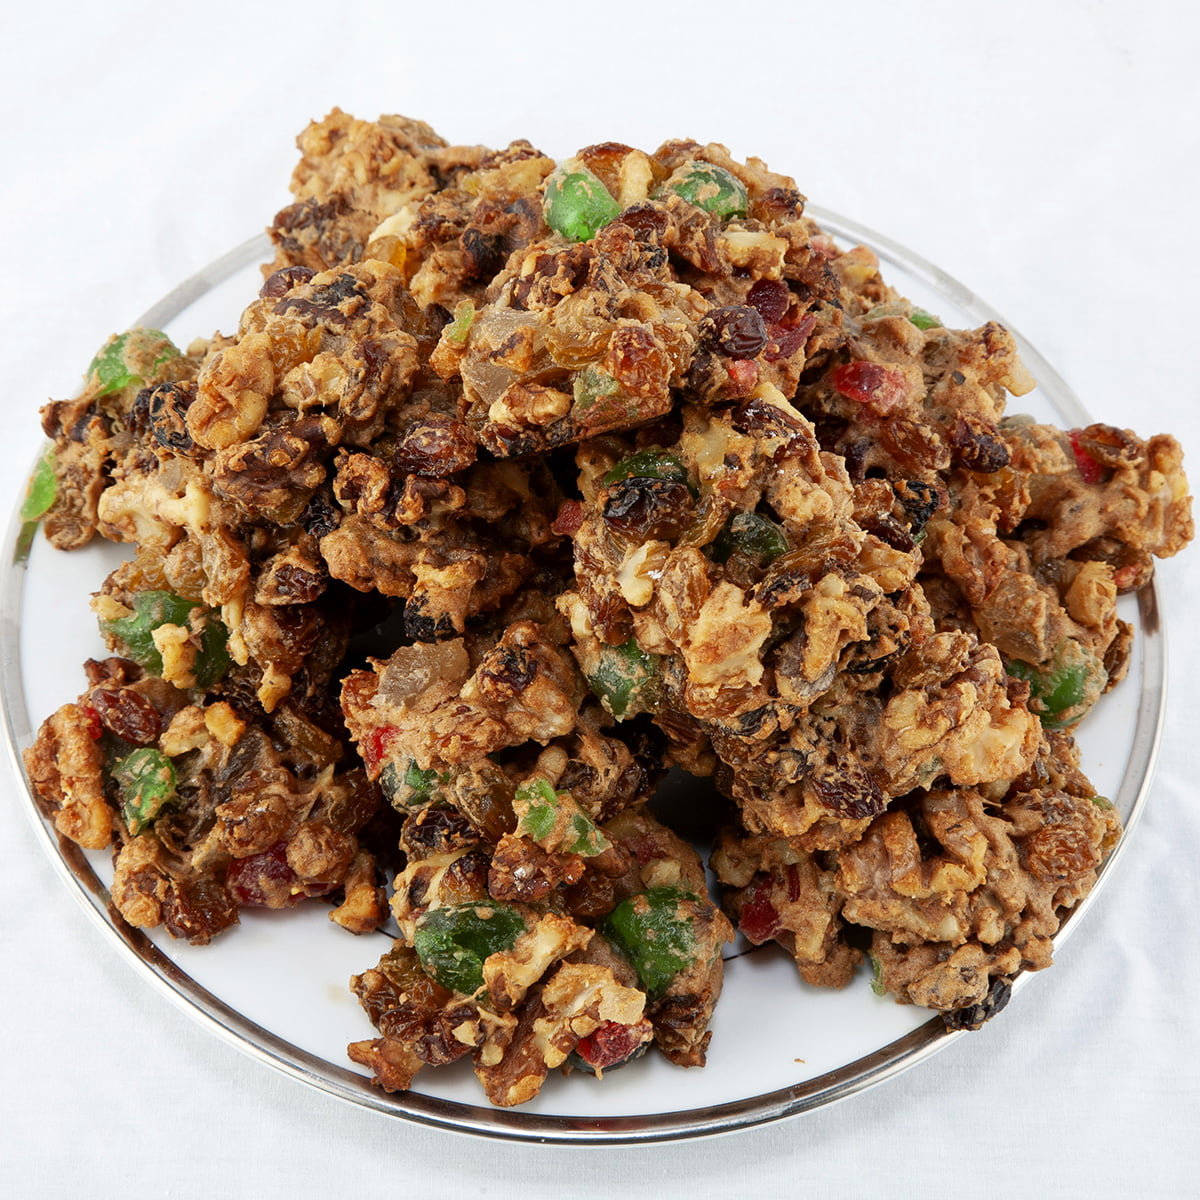 A plate of fruitcake cookies - darkish brown cookies with nuts and chunks of red and green glaceed cherries throughout.